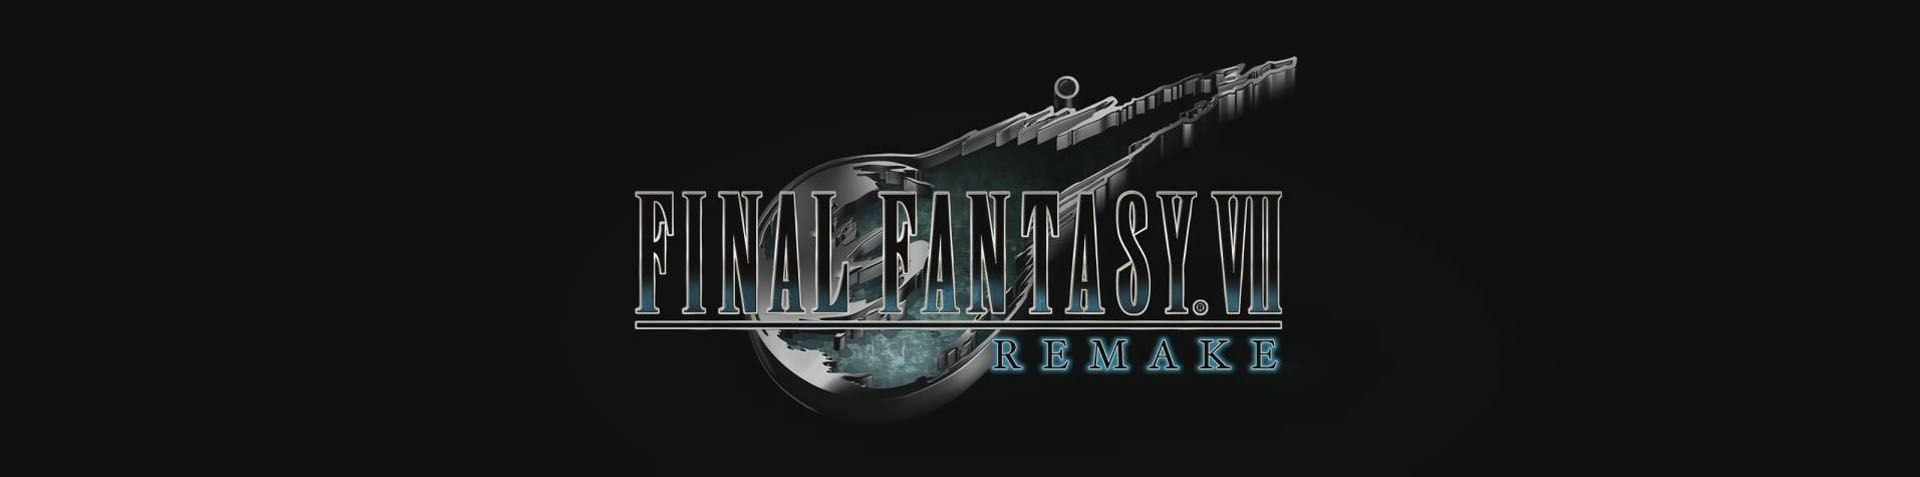 PlayStation Experience 2015 Final Fantasy VII Remake line